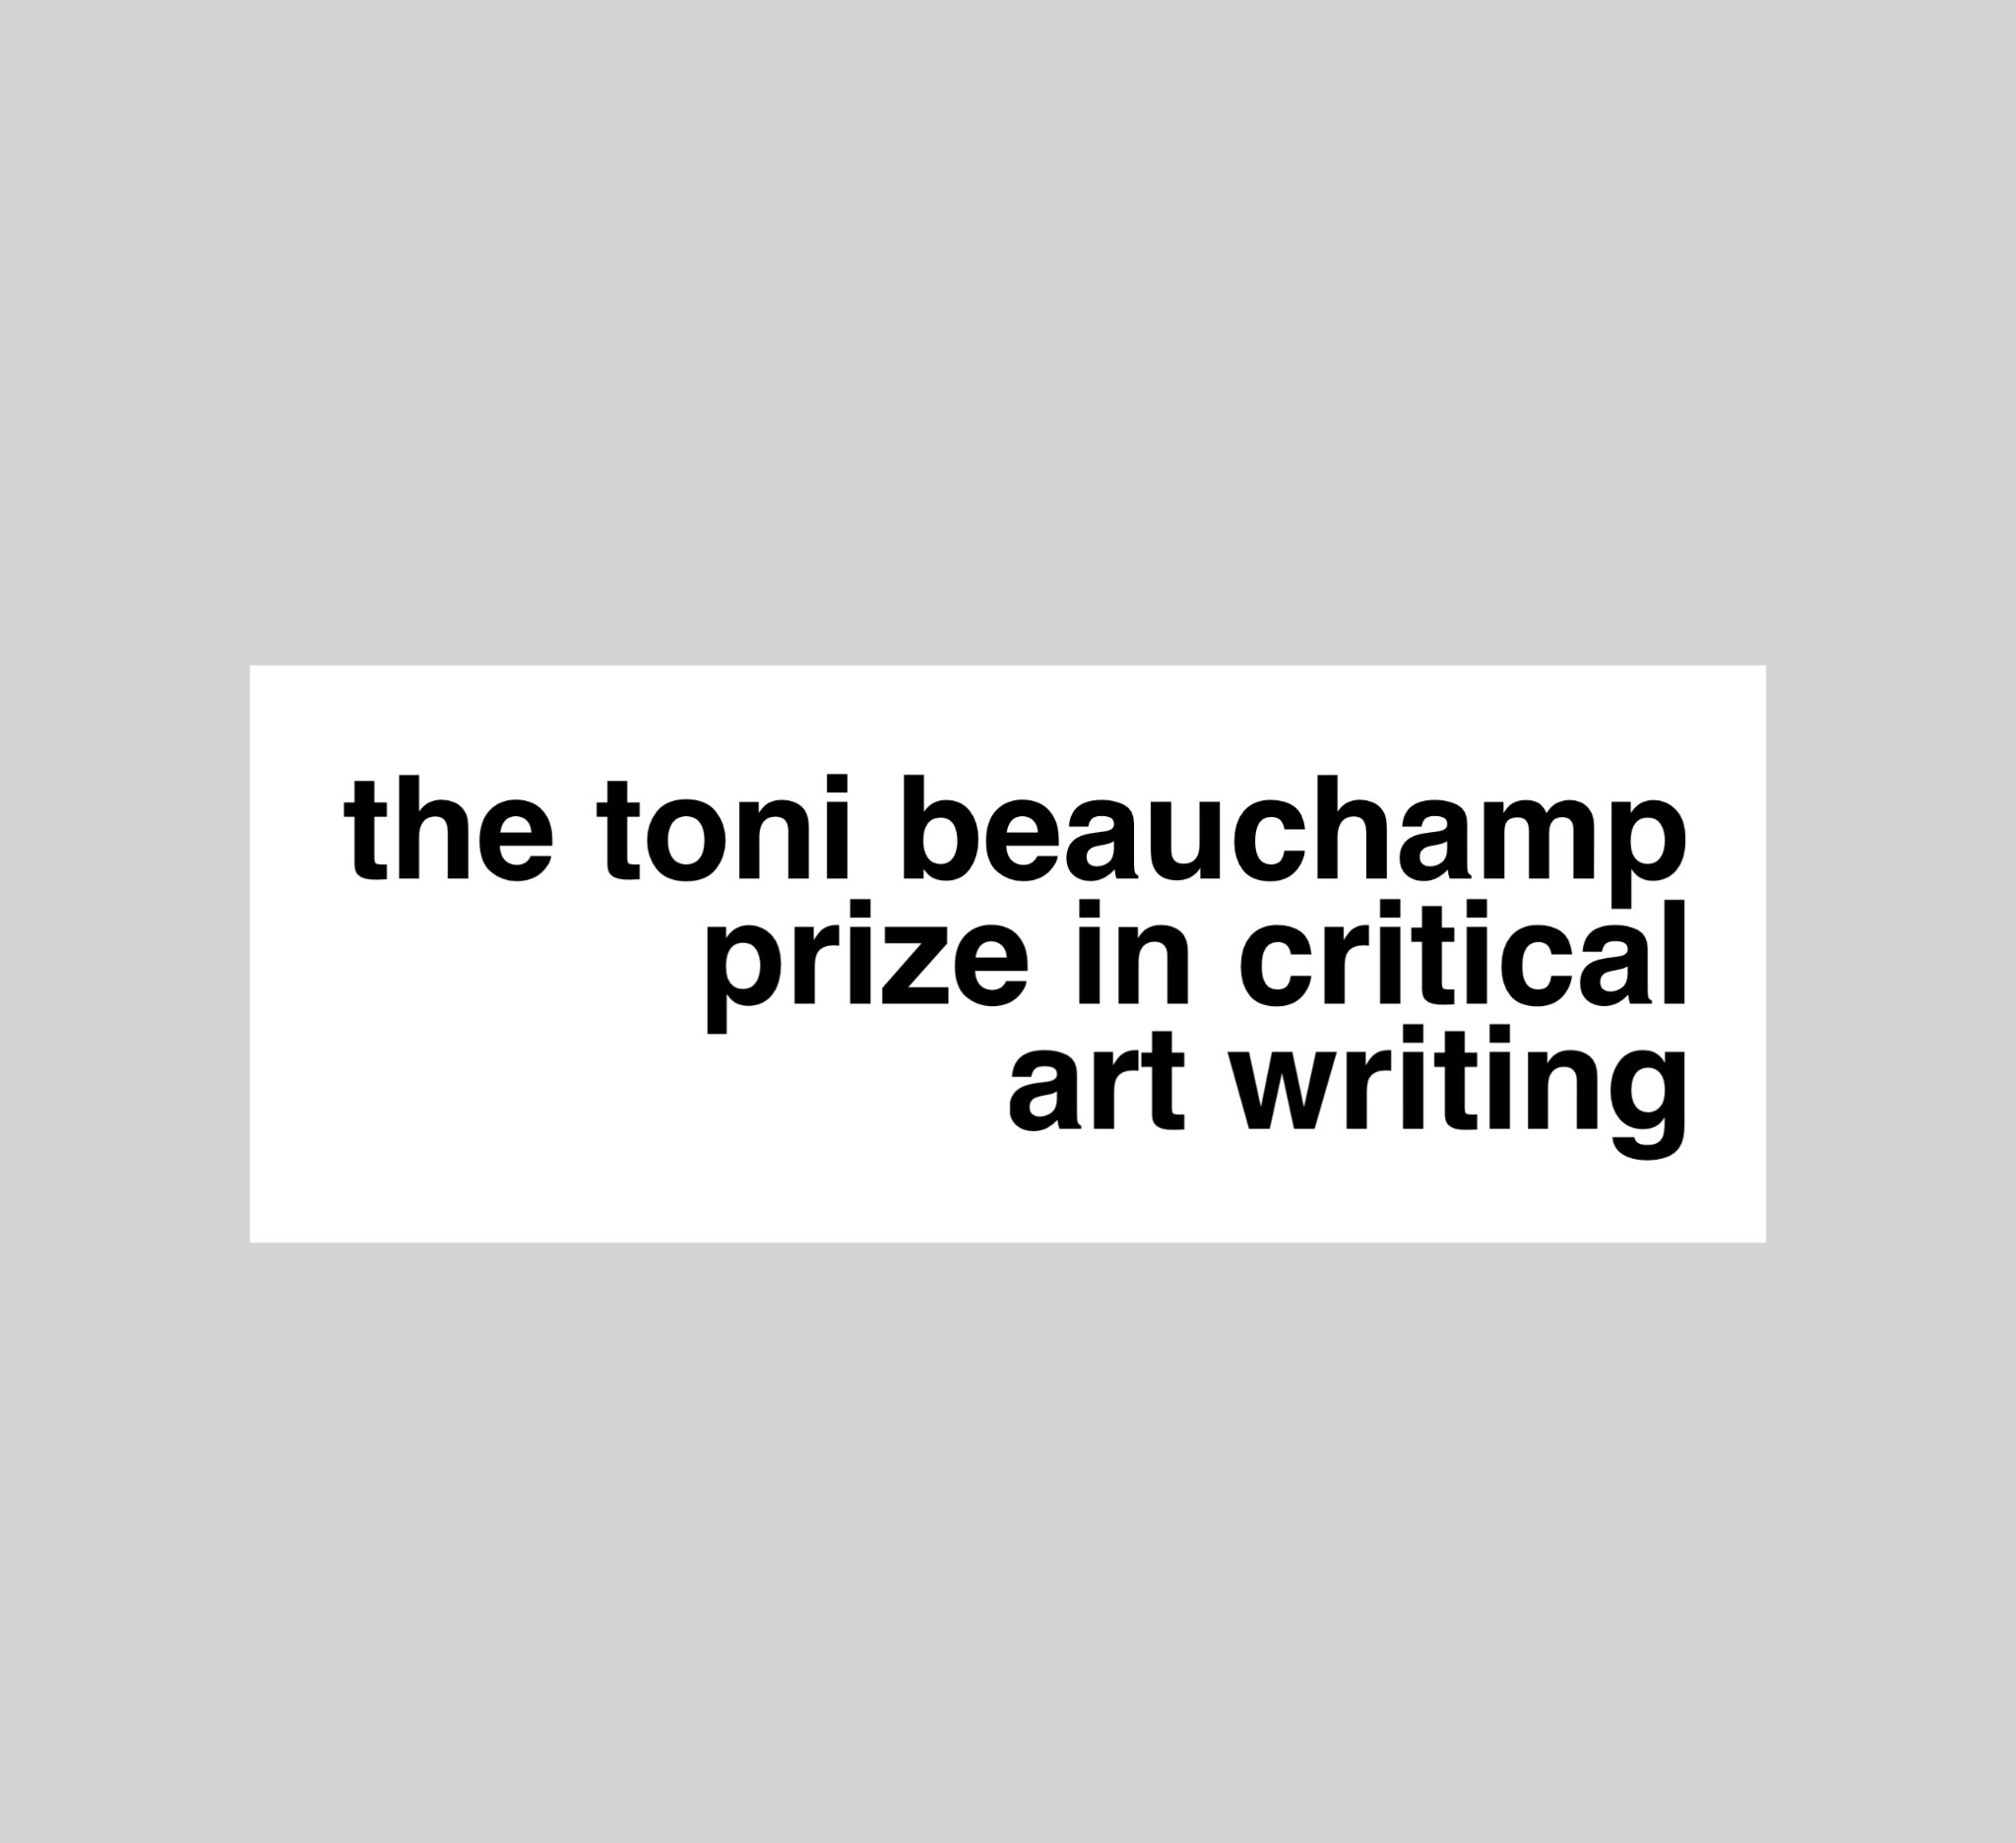 Toni Beauchamp Prize in Critical Art Writing